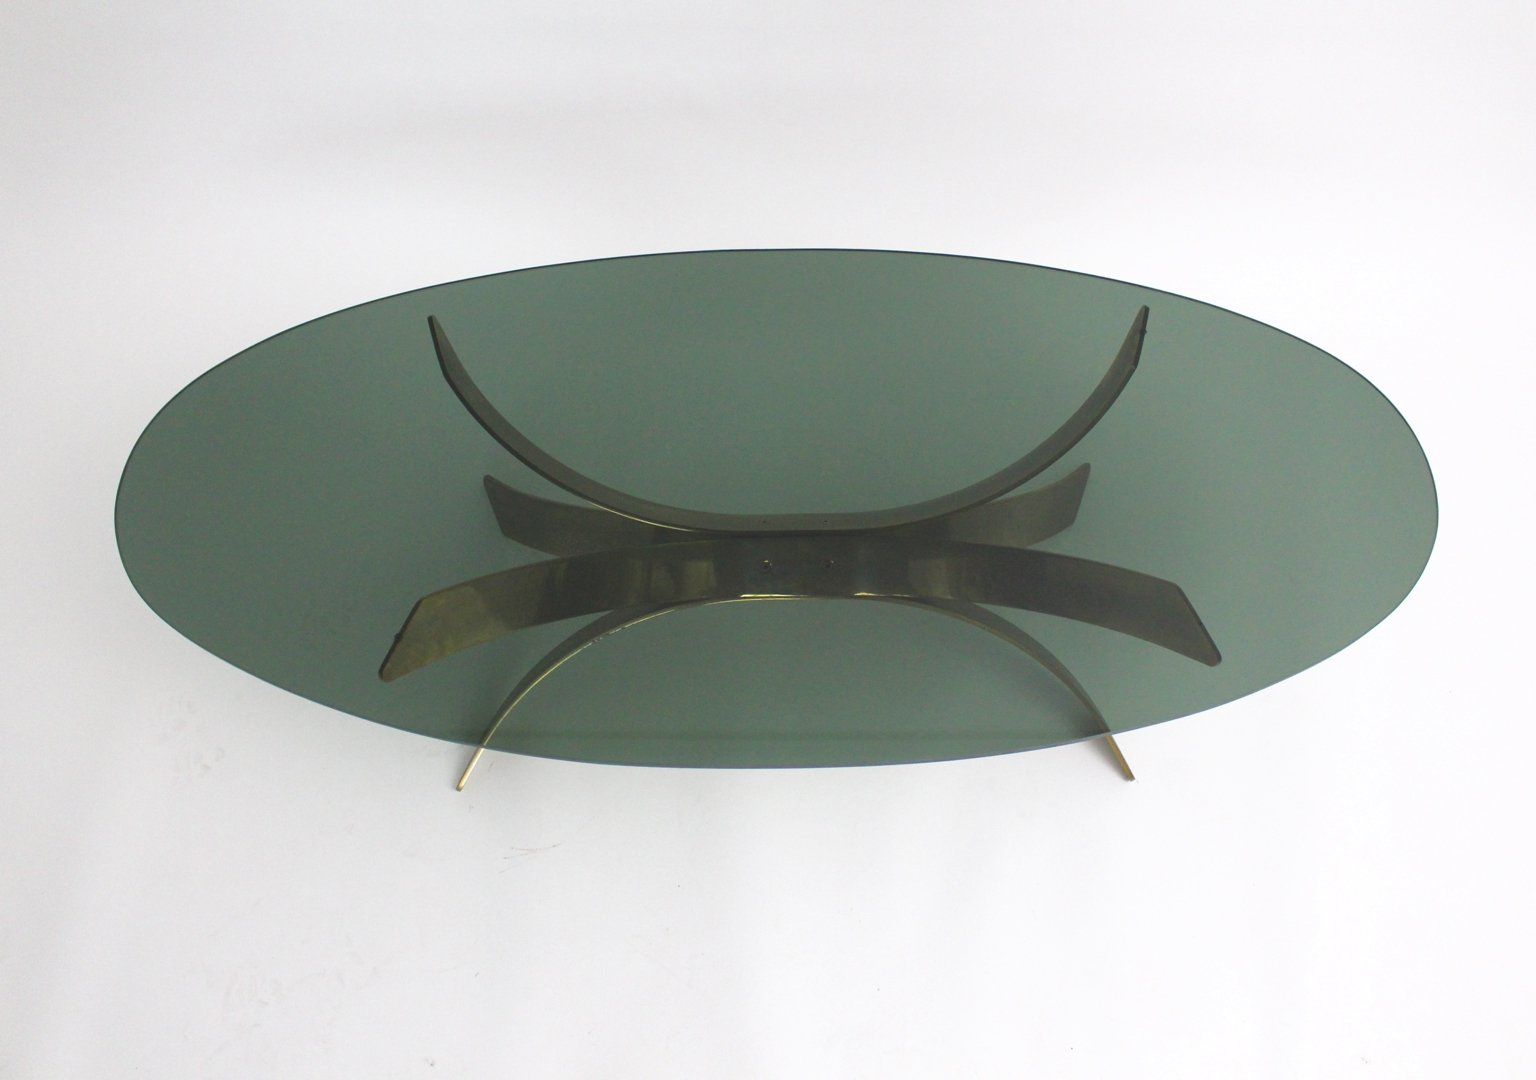 Antique Brass Glass Coffee Table Vintage Oval Brass Glass Coffee Table For Sale At Pamono